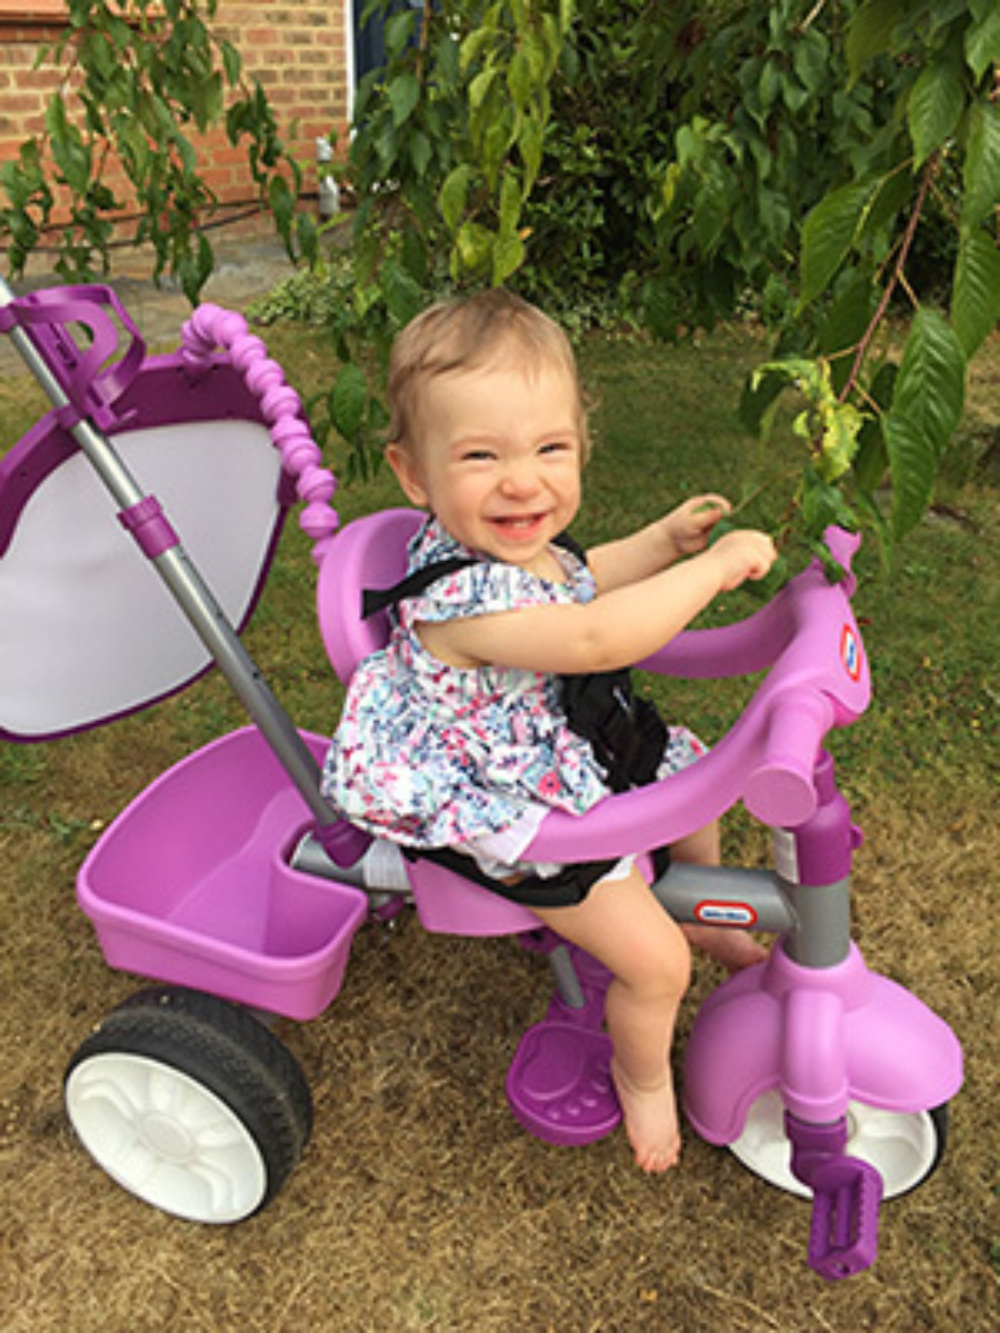 You toddler Violet, in her garden on her purple tricycle, smiling at the camera